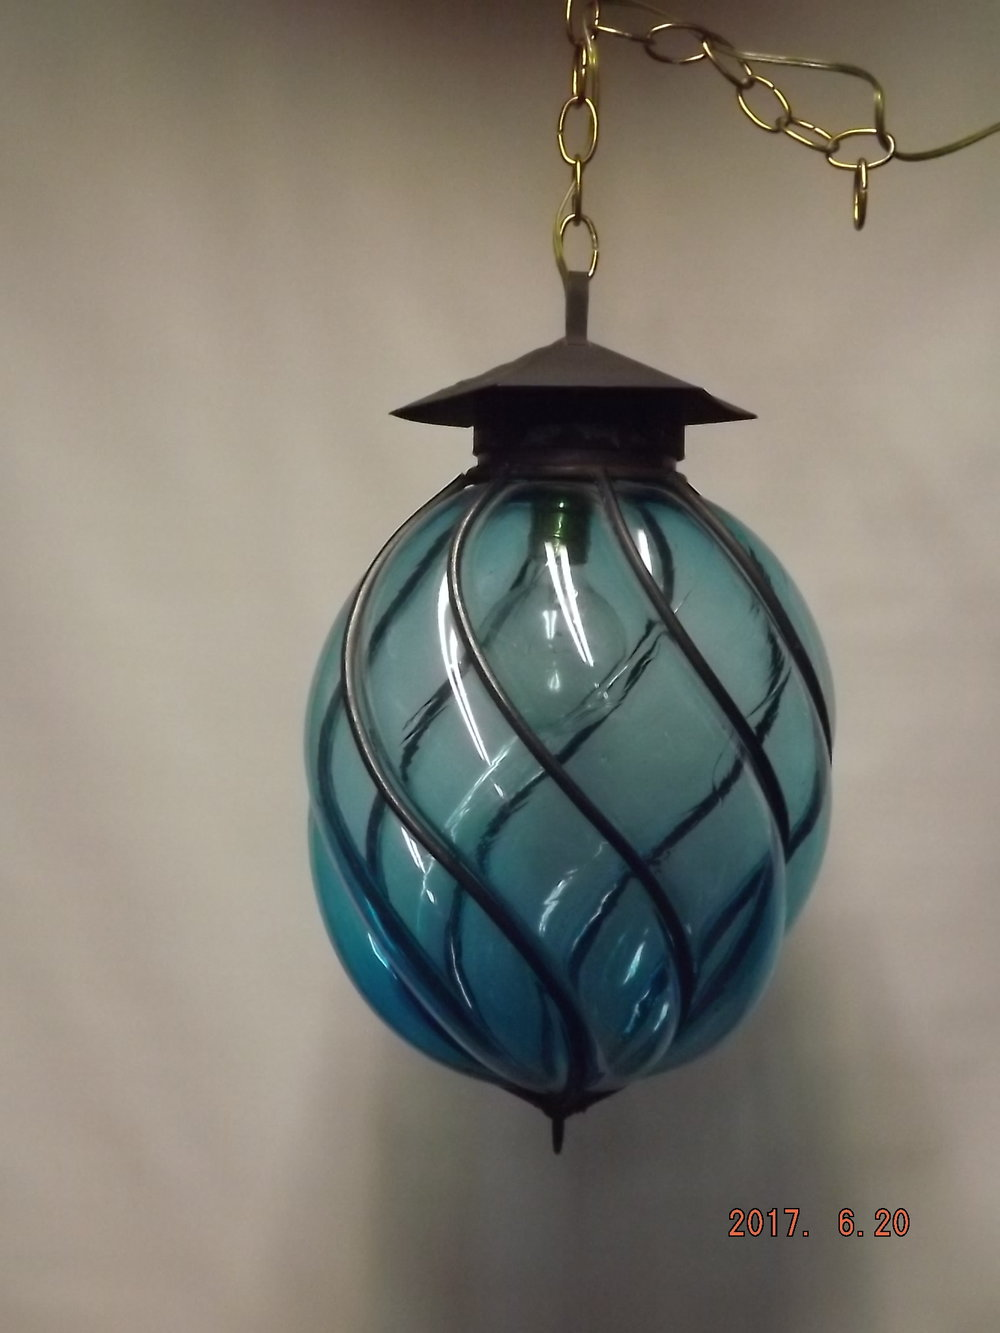 Electric fixture - Blue globe